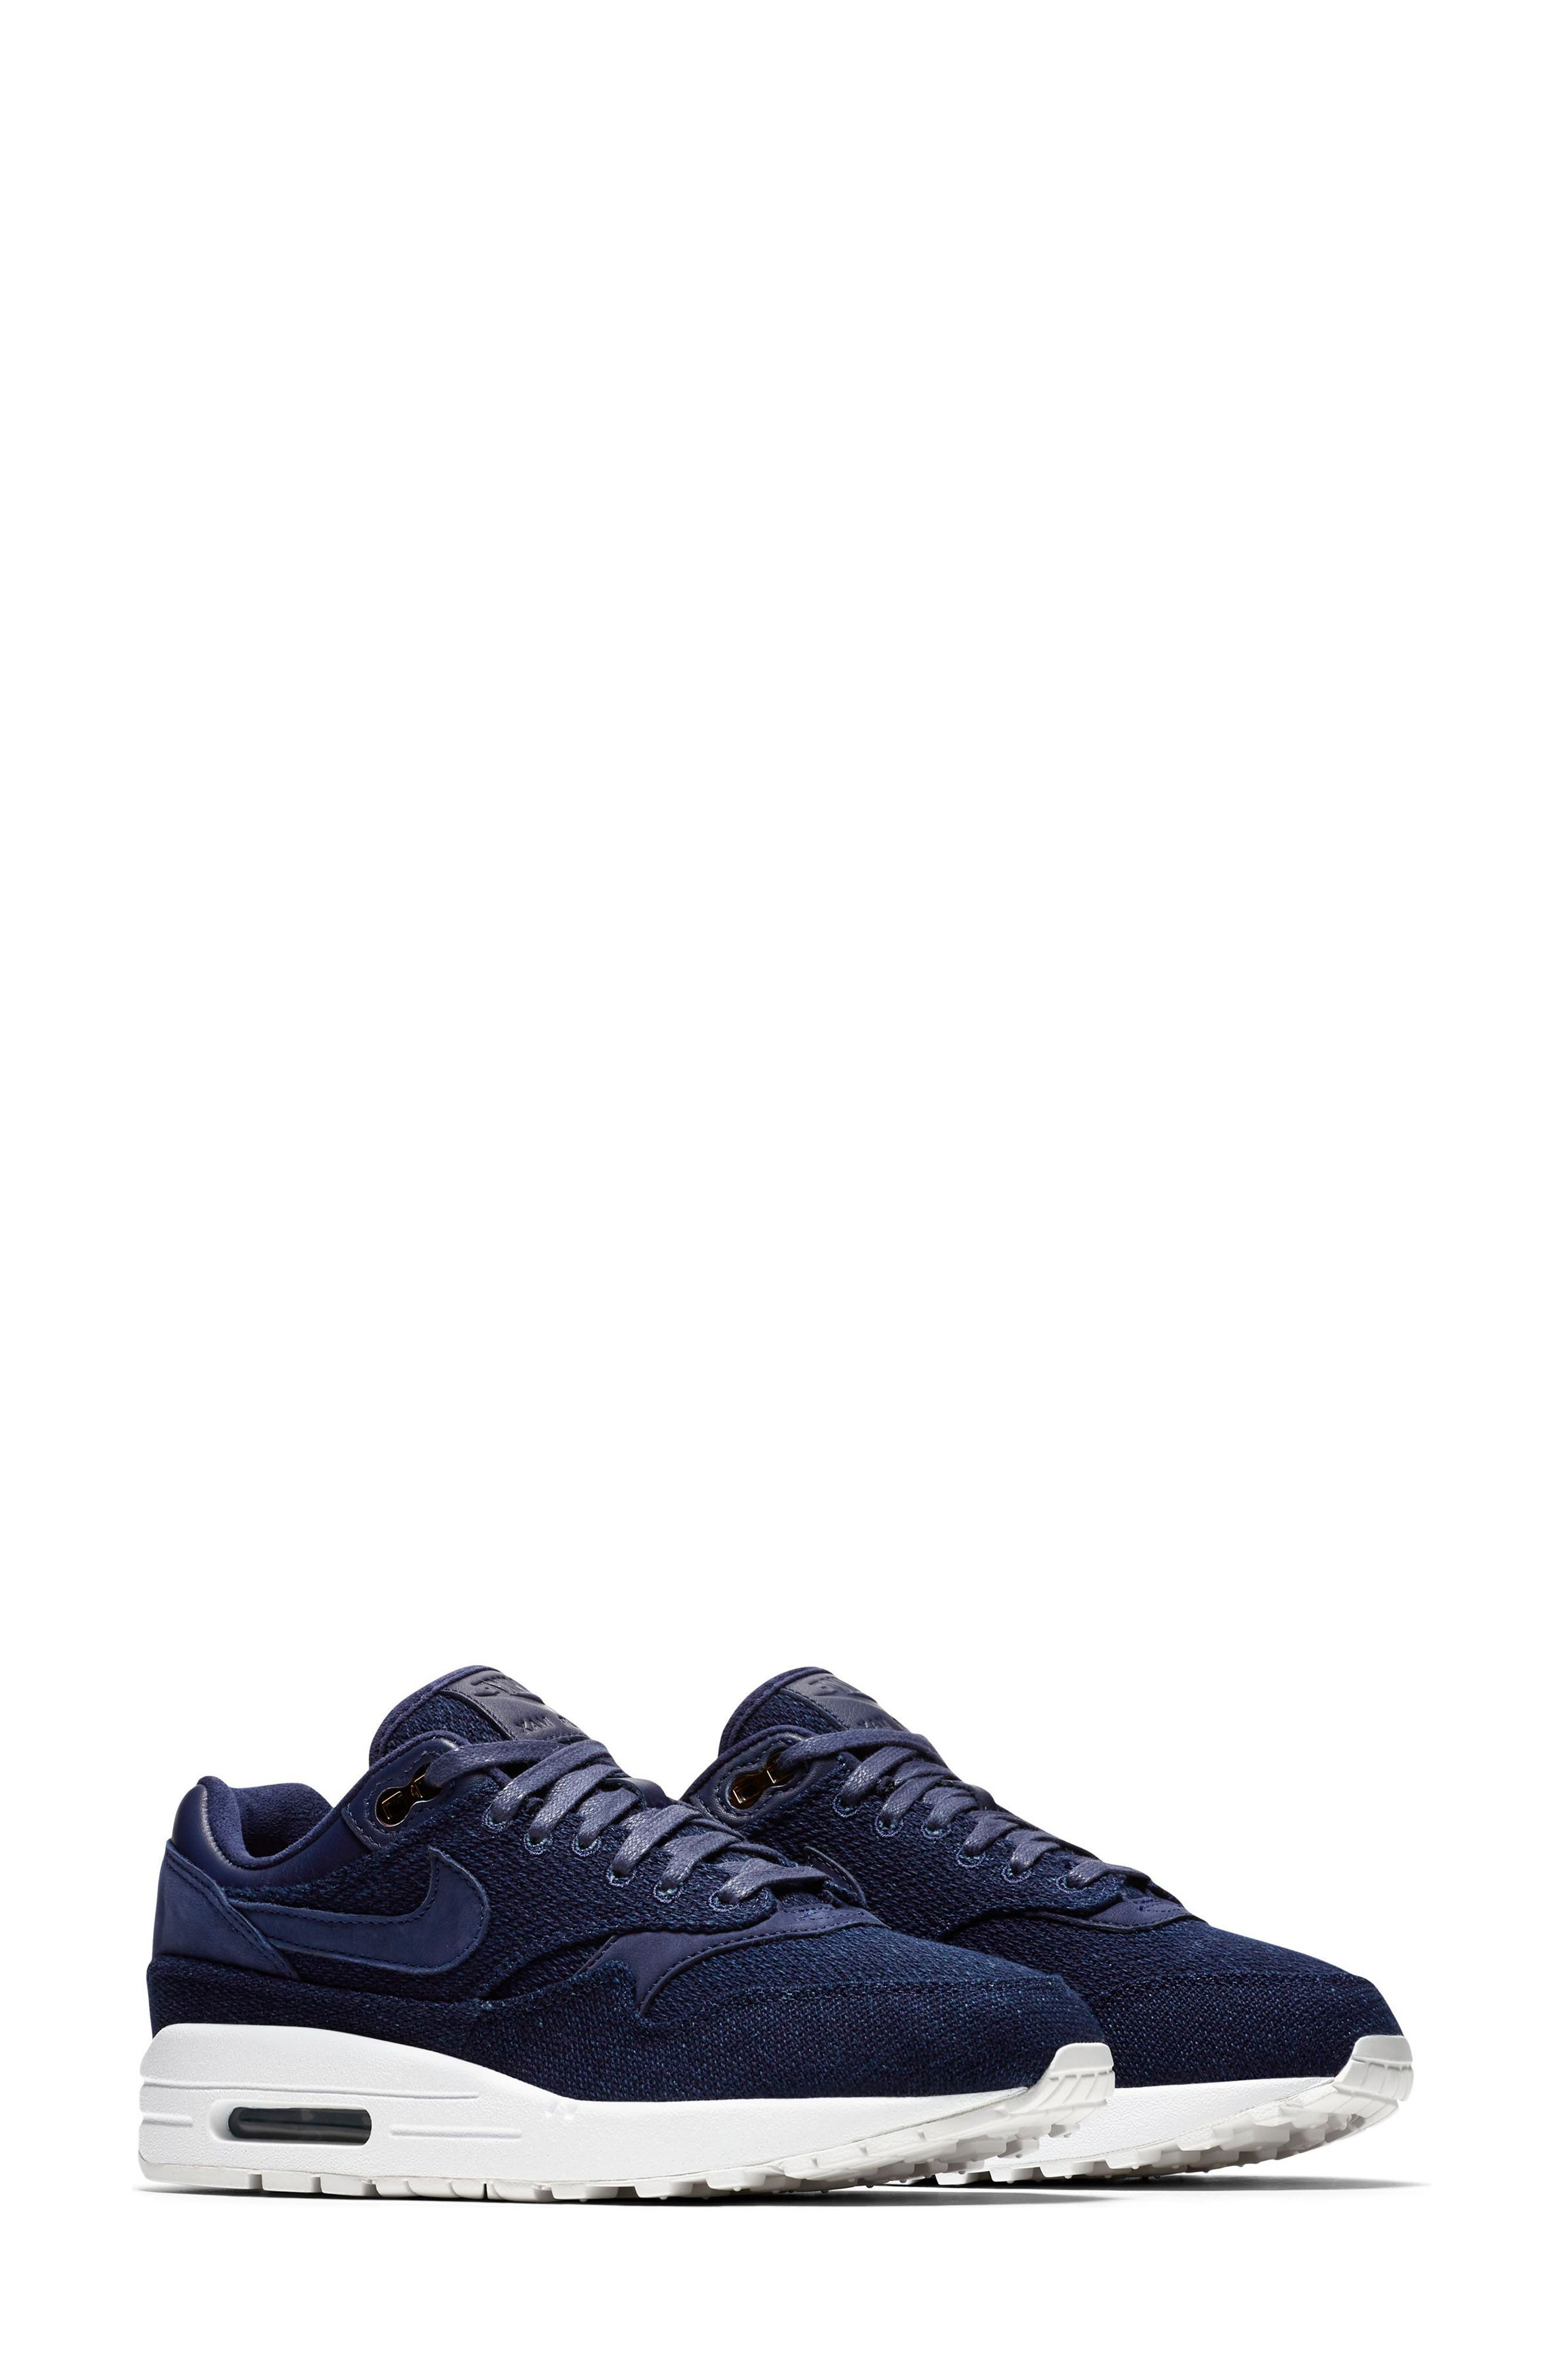 Air Max 1 Lux Sneaker,                         Main,                         color, Binary Blue/ White/ Stout